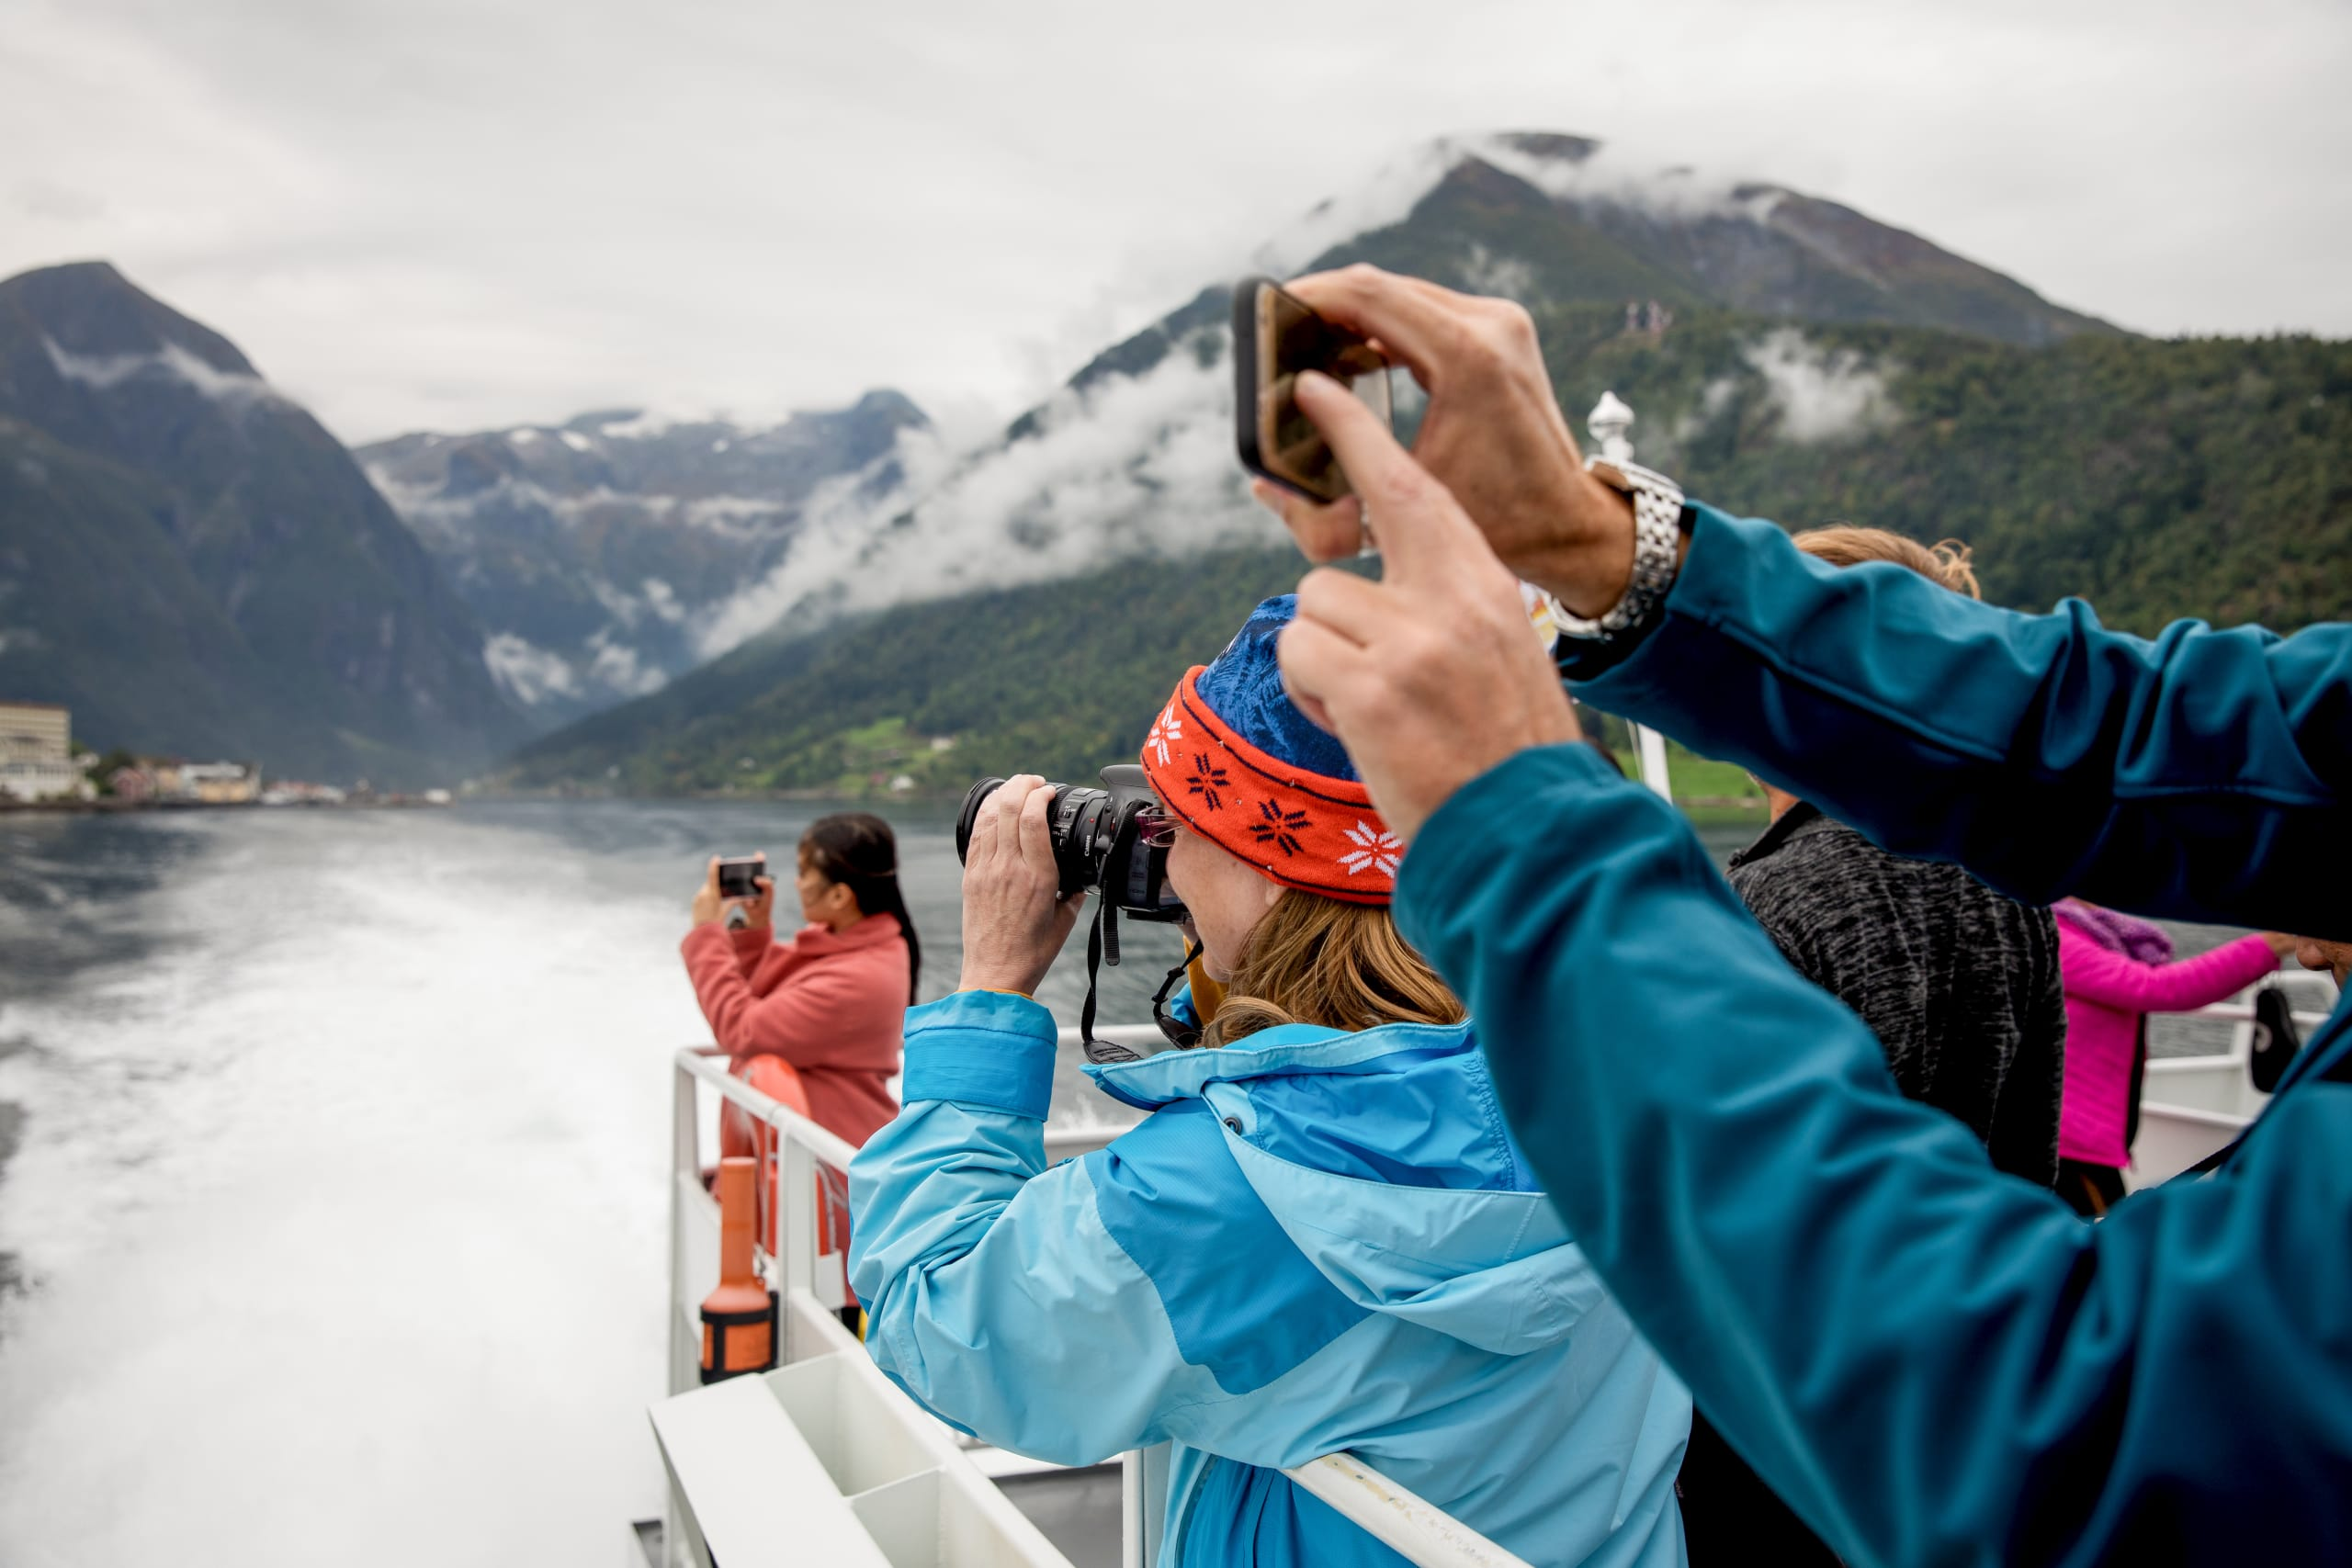 Tourists photographing at the sundeck of the fjord boat